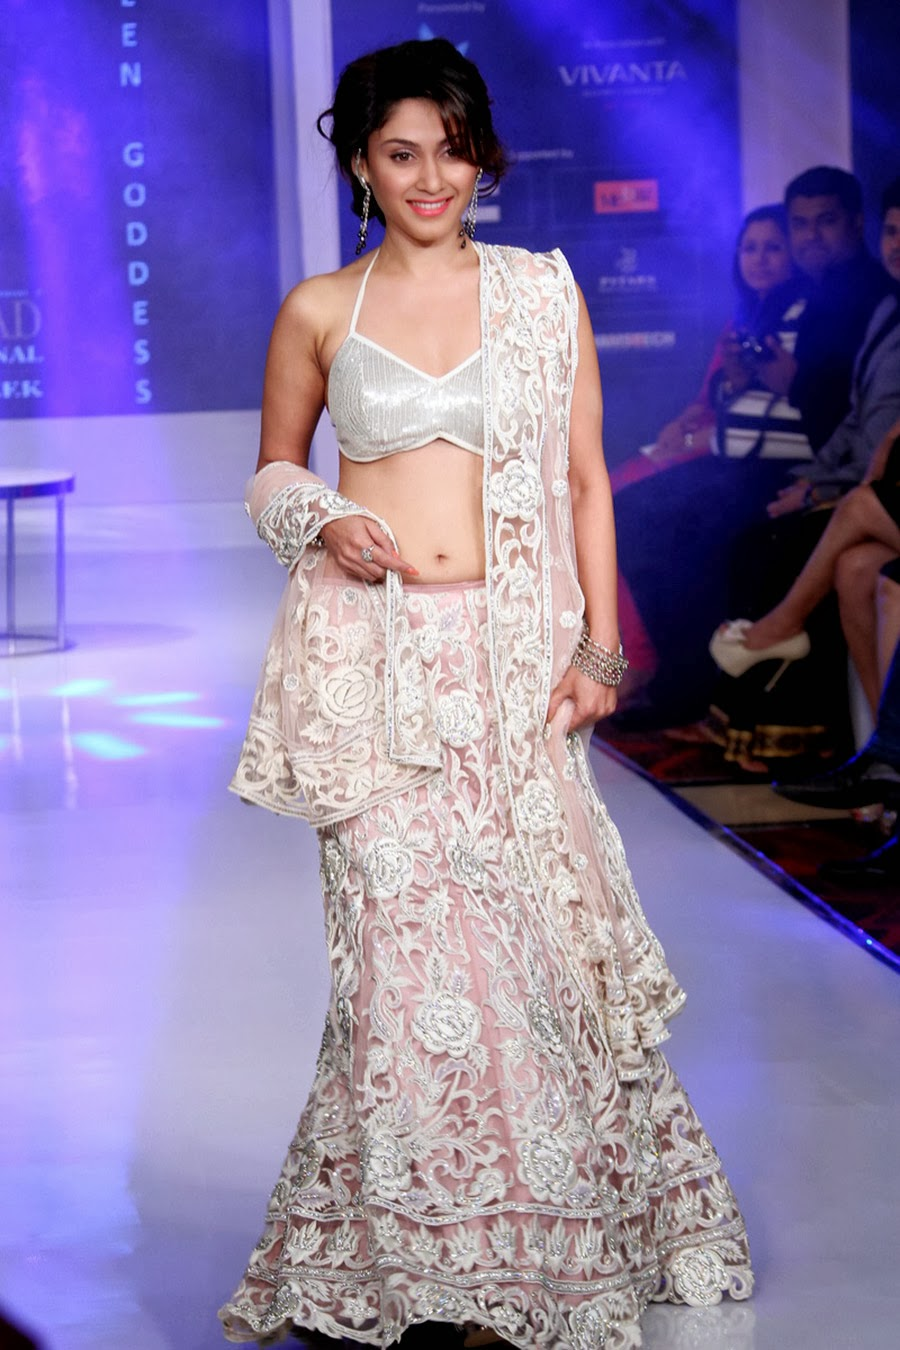 Manjari Phadnis Gorgeous Ramp Walk Photos-HQ-Photo-19